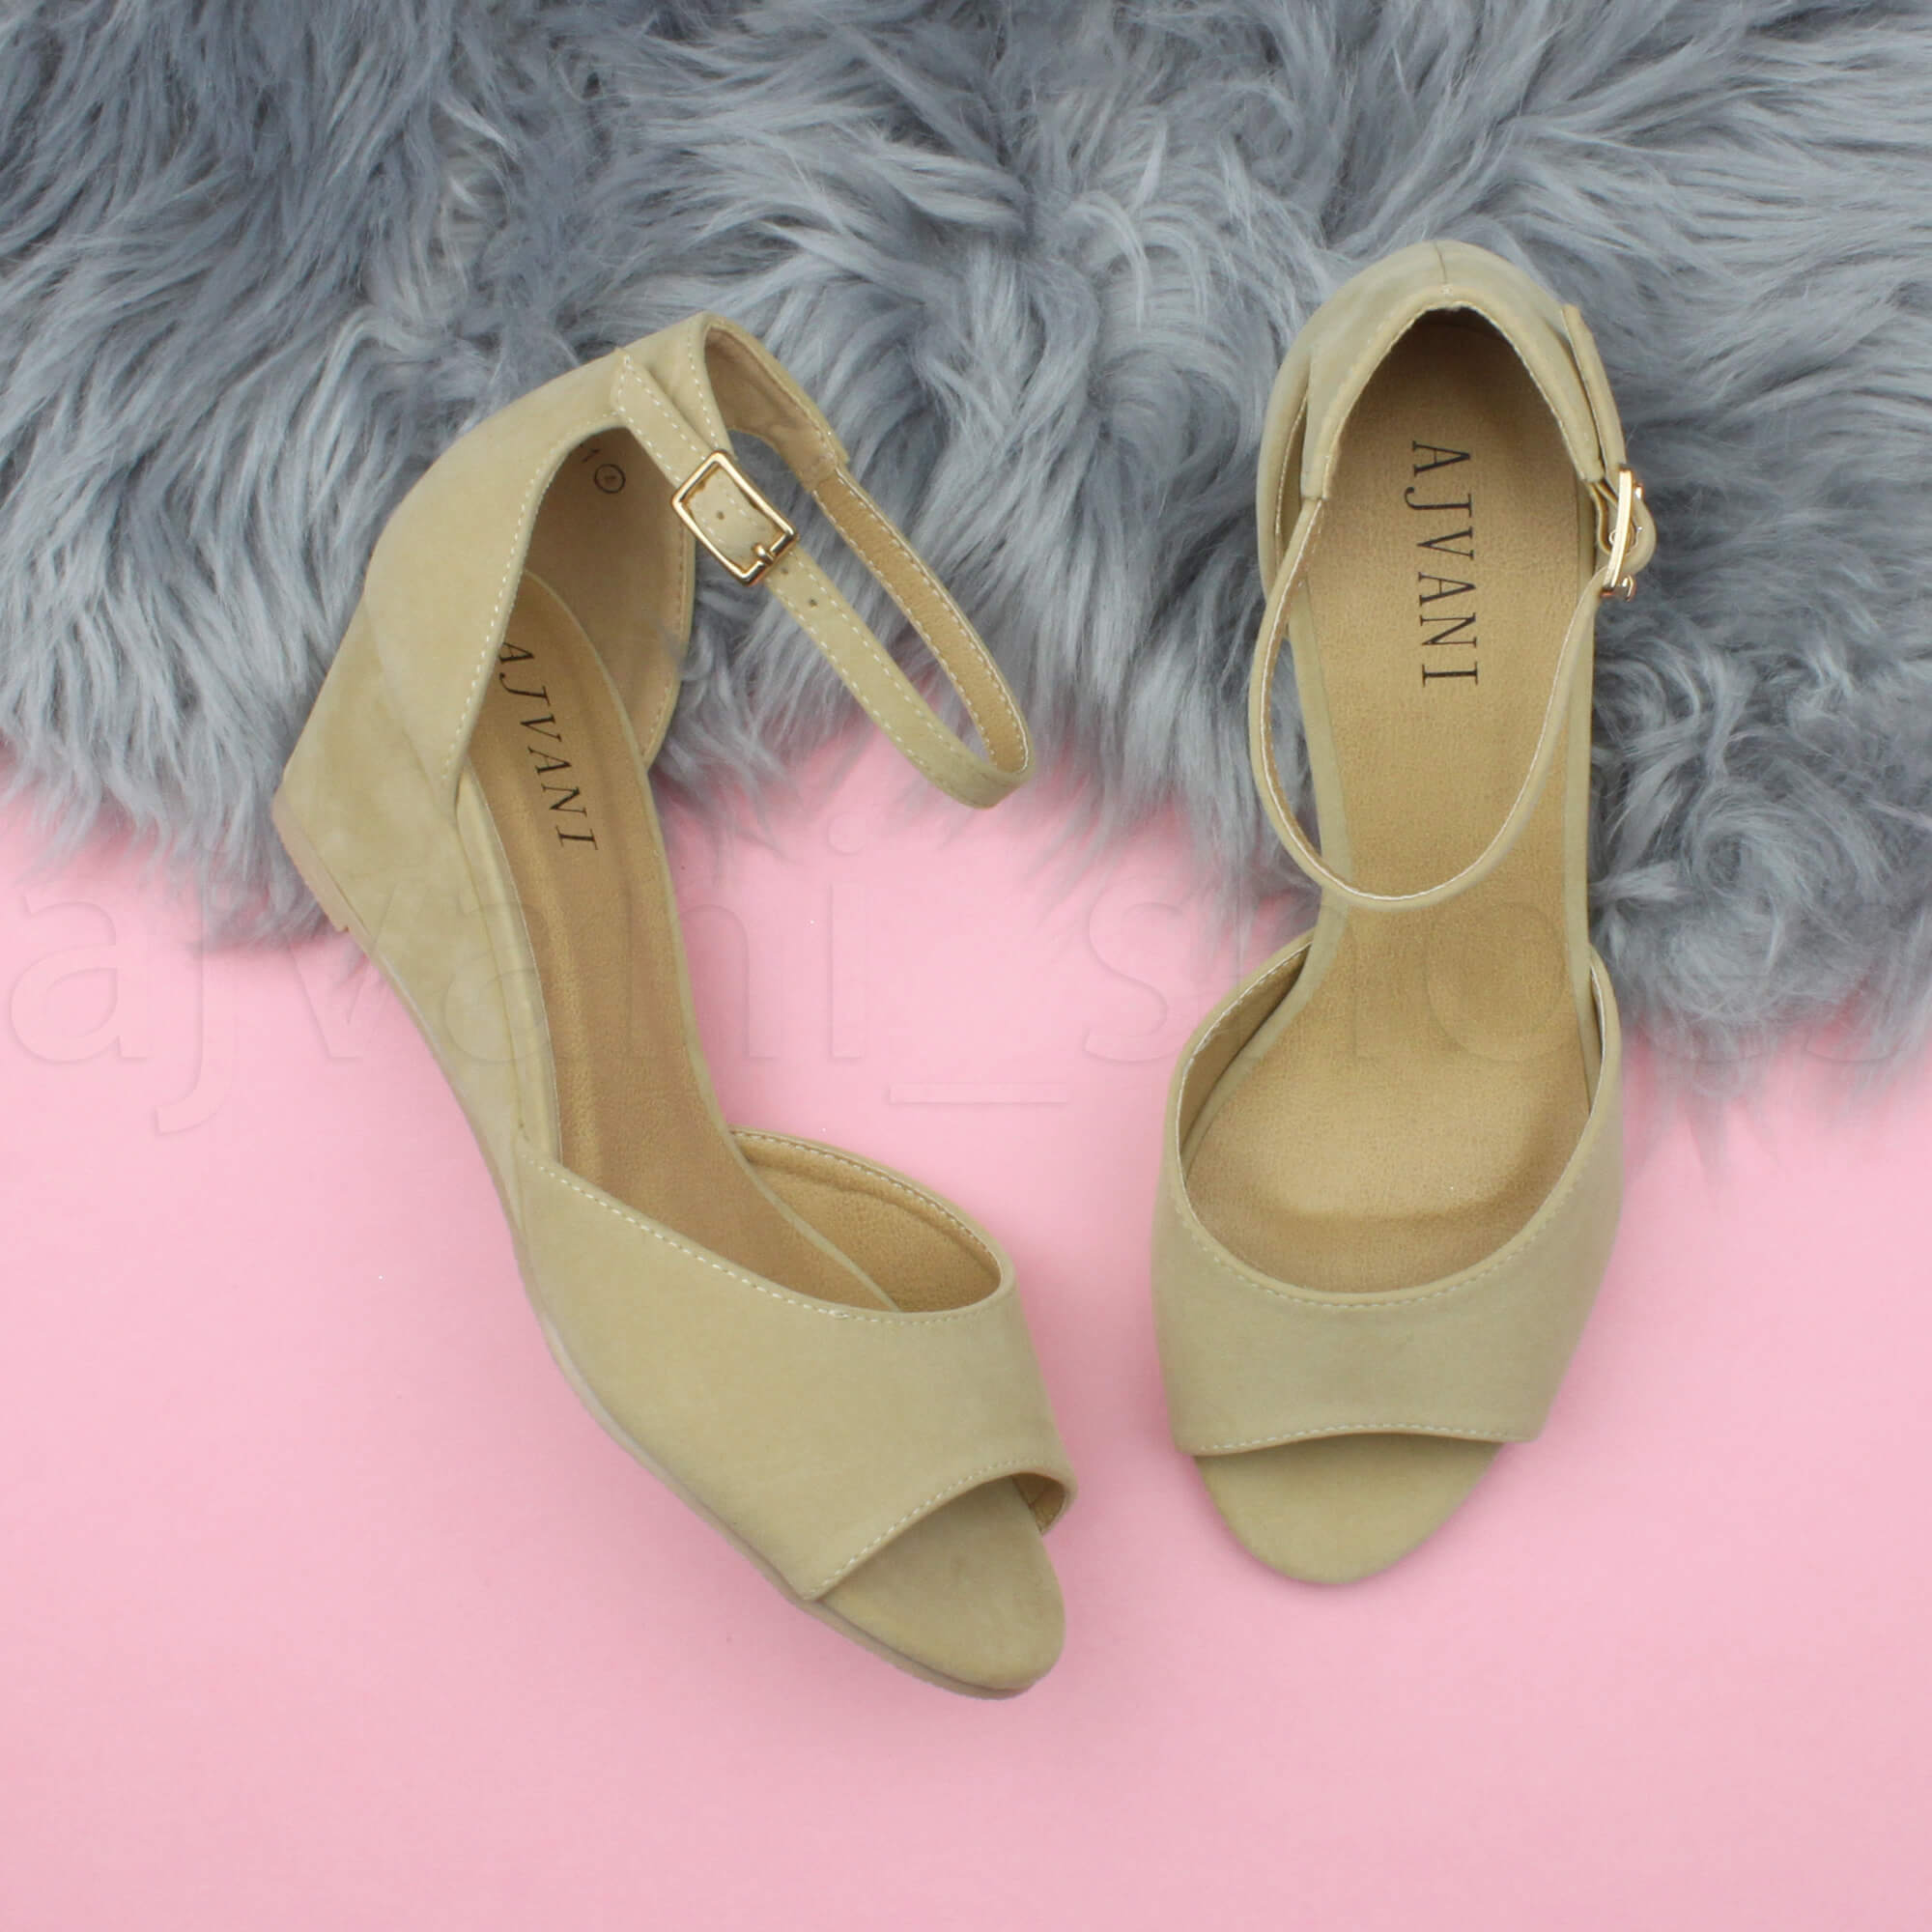 WOMENS-LADIES-LOW-MID-WEDGE-HEEL-ANKLE-STRAP-SMART-CASUAL-EVENING-SANDALS-SIZE thumbnail 109